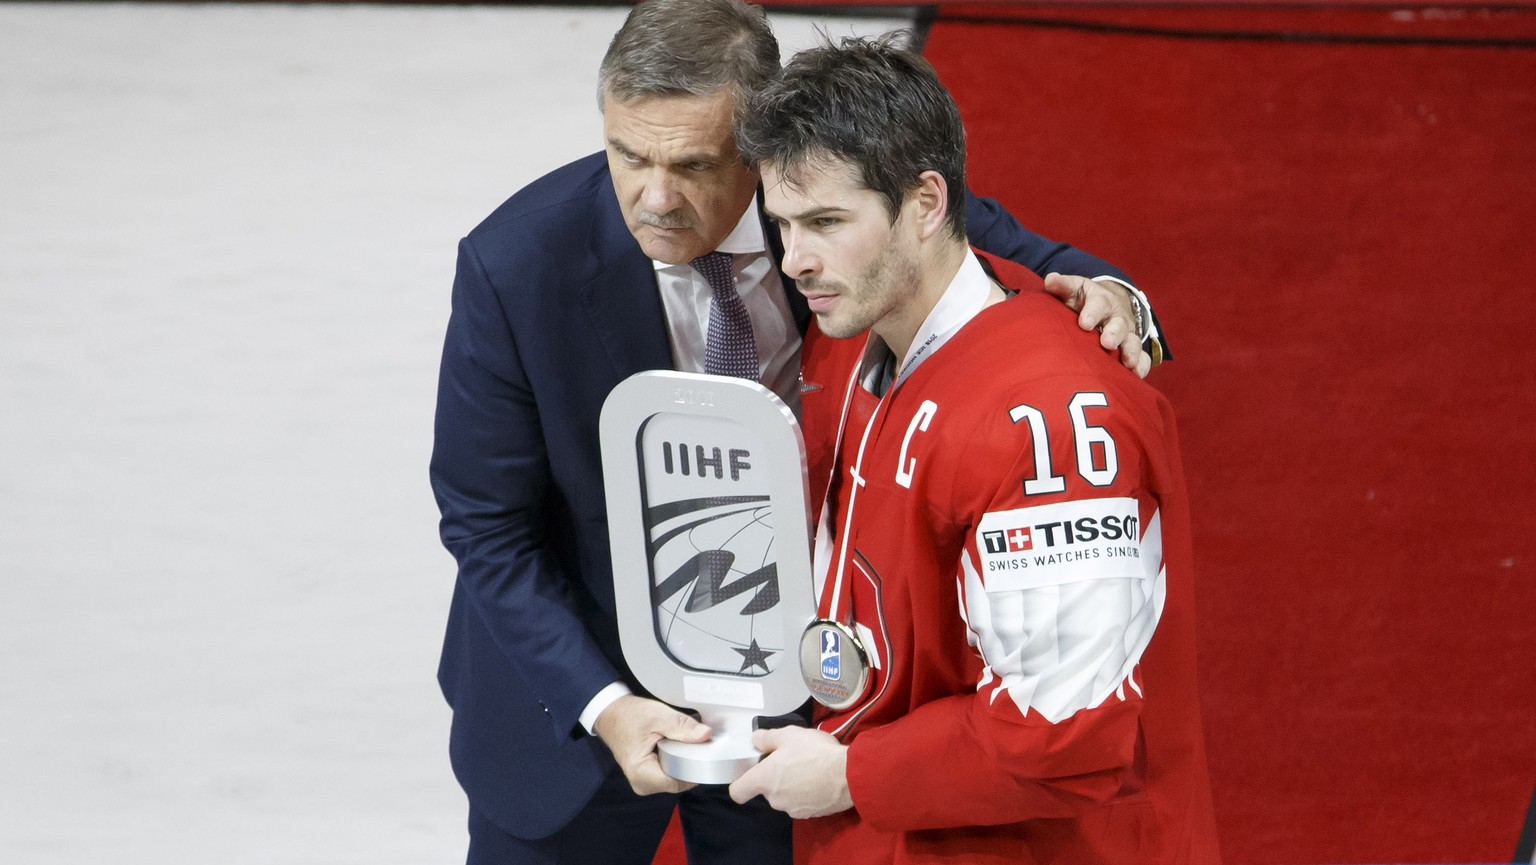 Rene Fasel, left, President of IIHF, gives the silver trophy to Switzerland's defender Raphael Diaz, right, after team Switzerland losing agains team Sweden, during the shootout of the IIHF 2018 World Championship Gold Medal game between Sweden and Switzerland, at the Royal Arena, in Copenhagen, Denmark, Sunday, May 20, 2018. (KEYSTONE/Salvatore Di Nolfi)